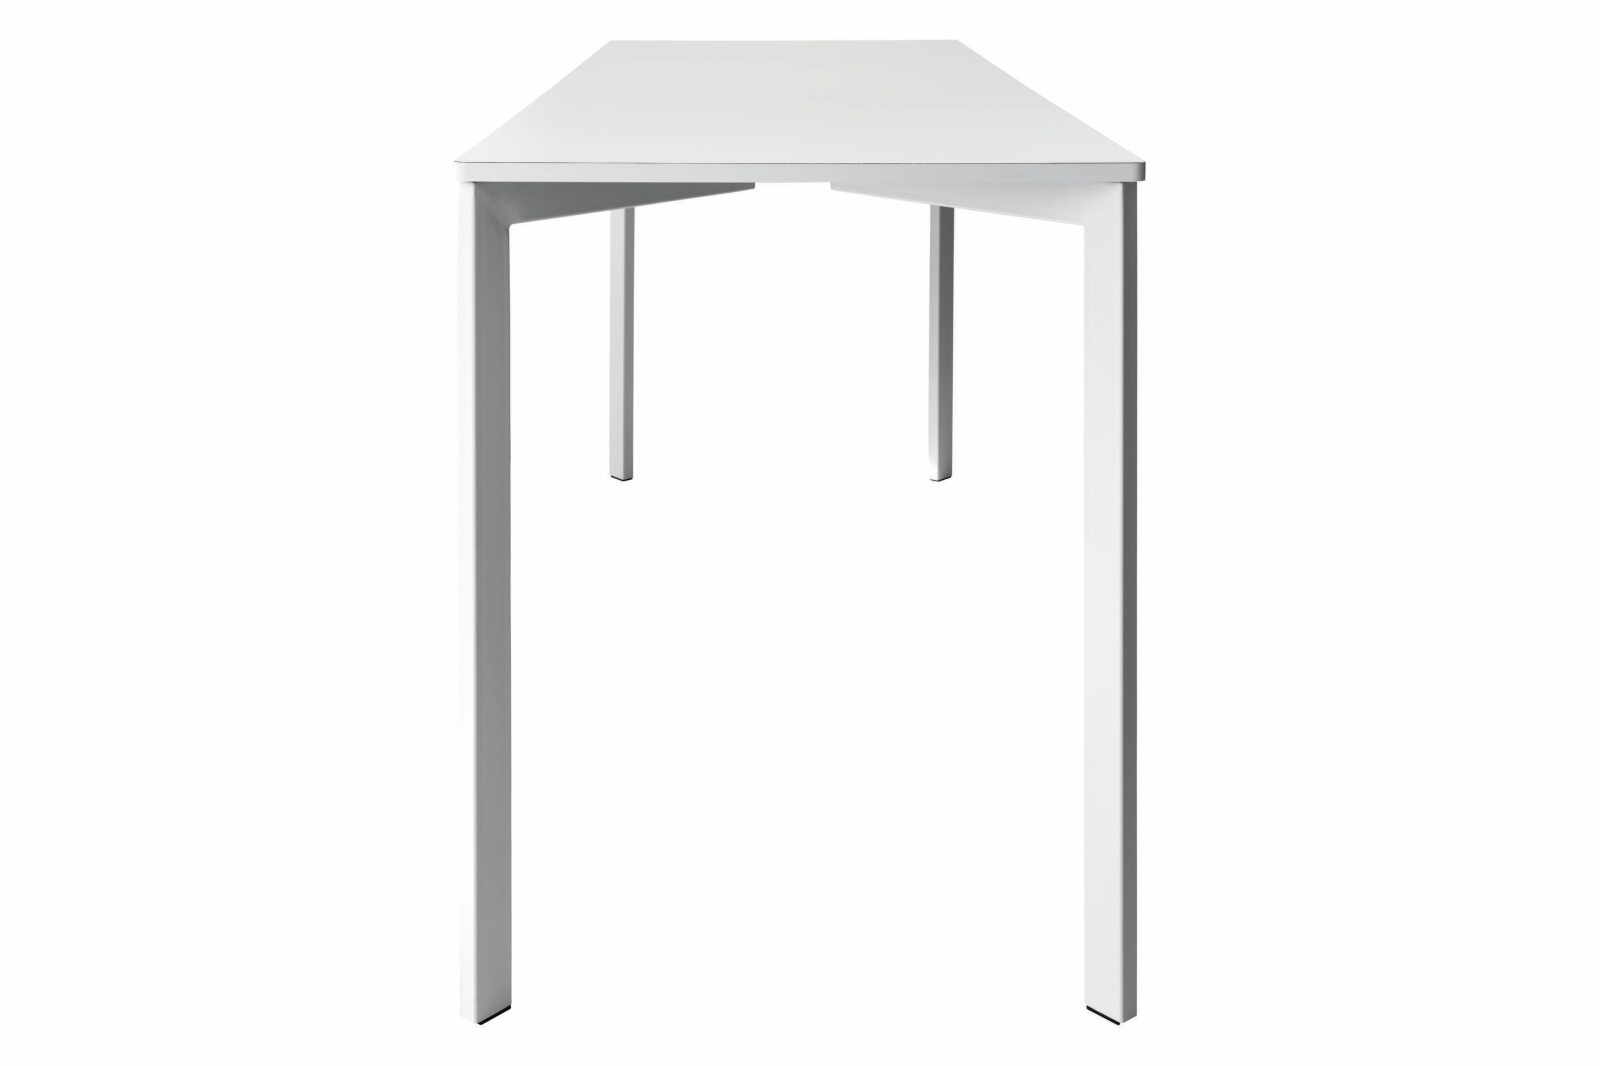 Y! Bar Laminate Table Gubi Laminate White, 70x160 cm, Gubi Metal White